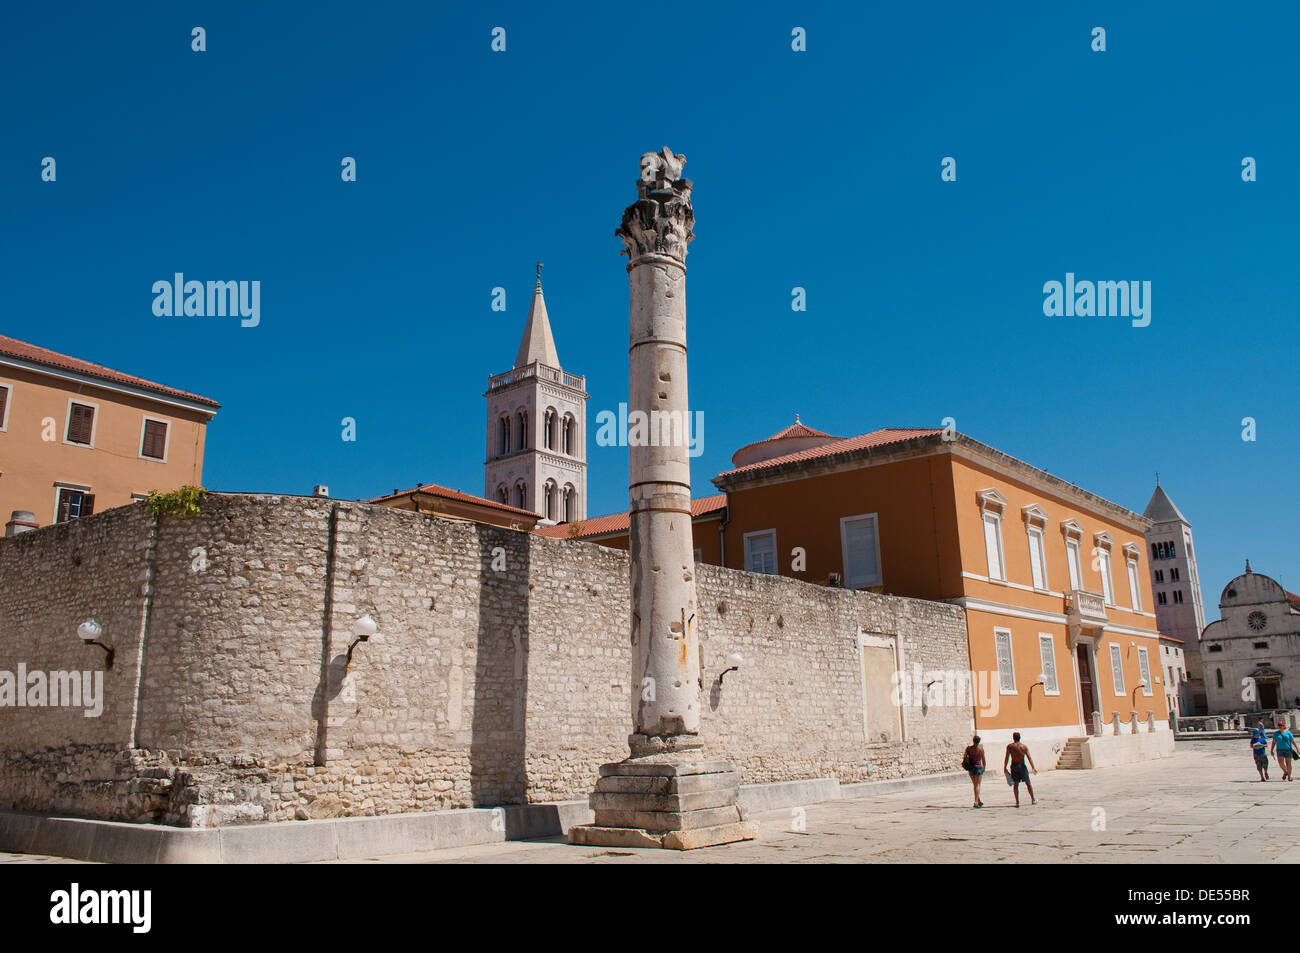 Pillar of Shame, Stup srama, in the historic Forum, Poljana, Zadar, Croatia - Stock Image